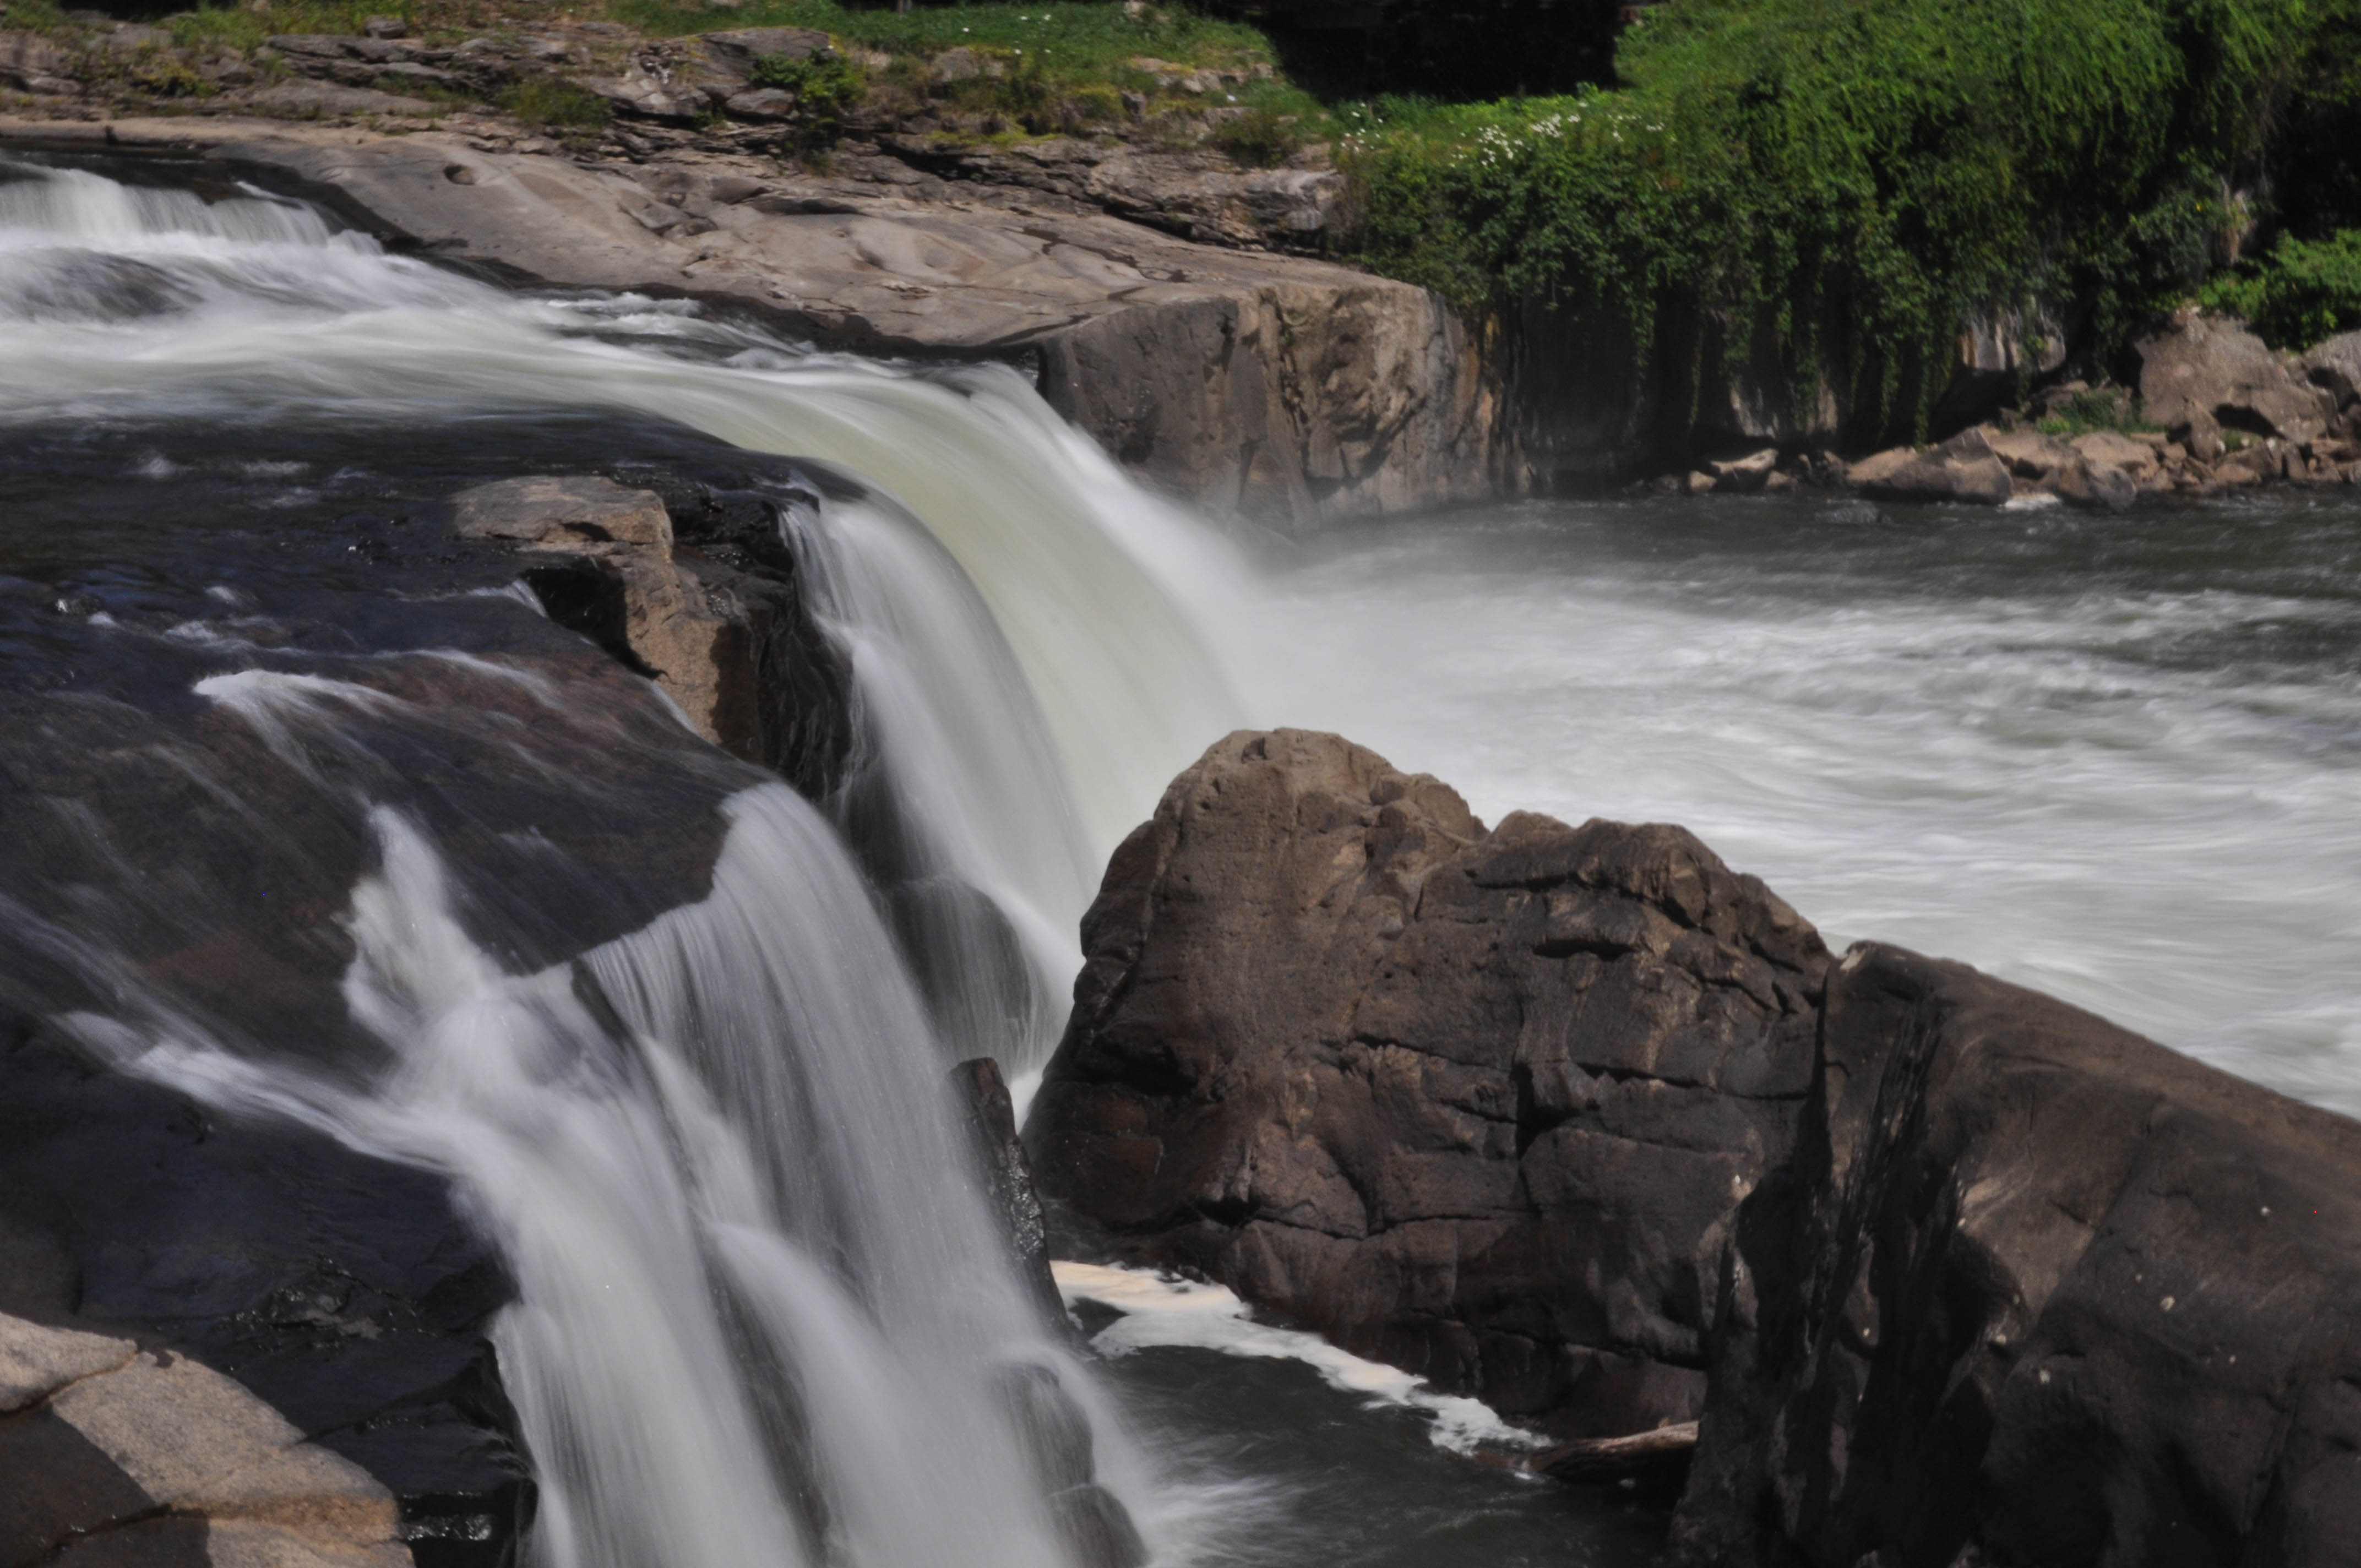 Ohiopyle Falls - Edited for Enlarge